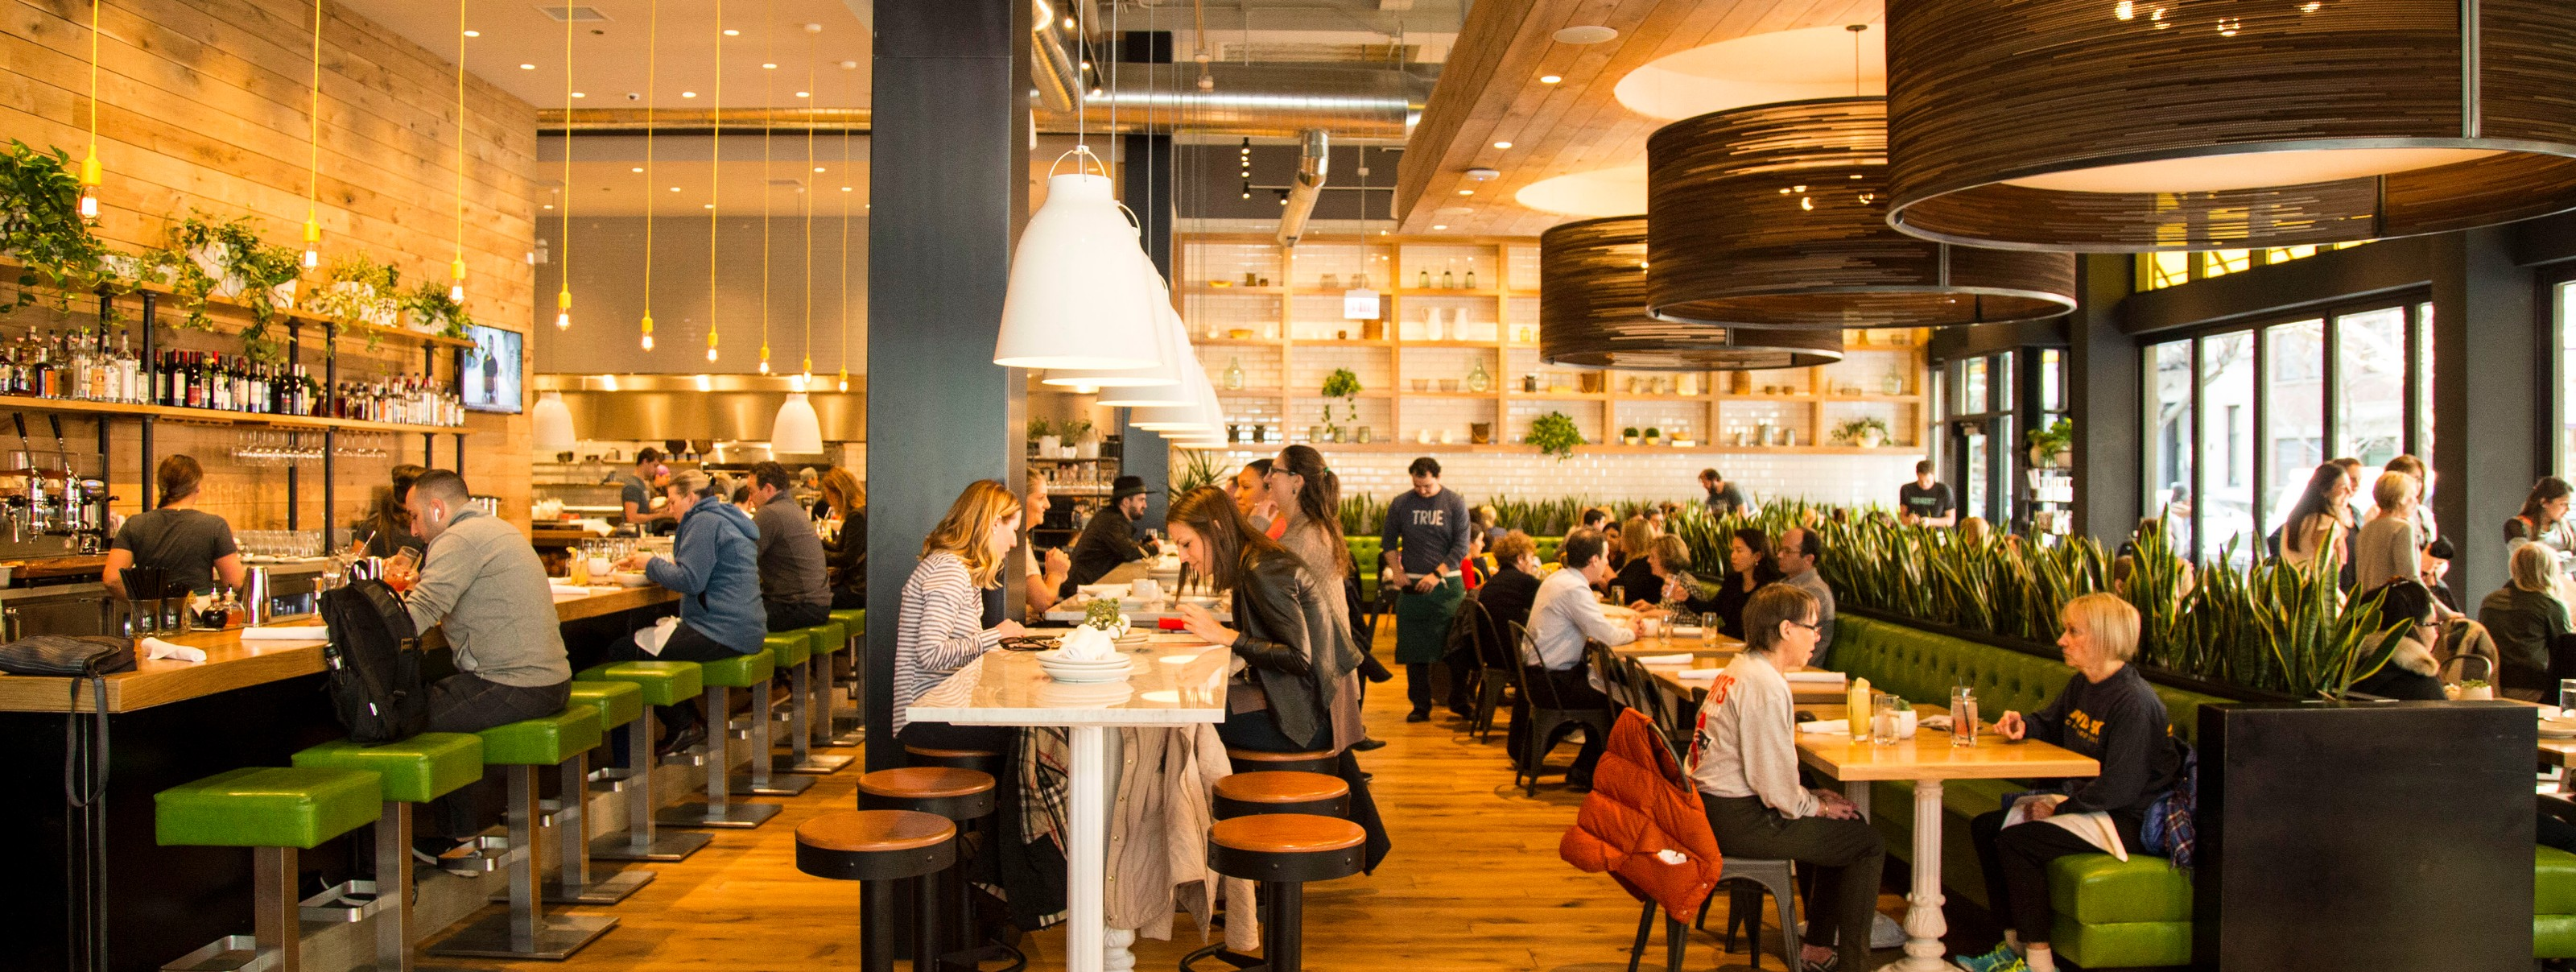 True Food Kitchen River North Chicago The Infatuation